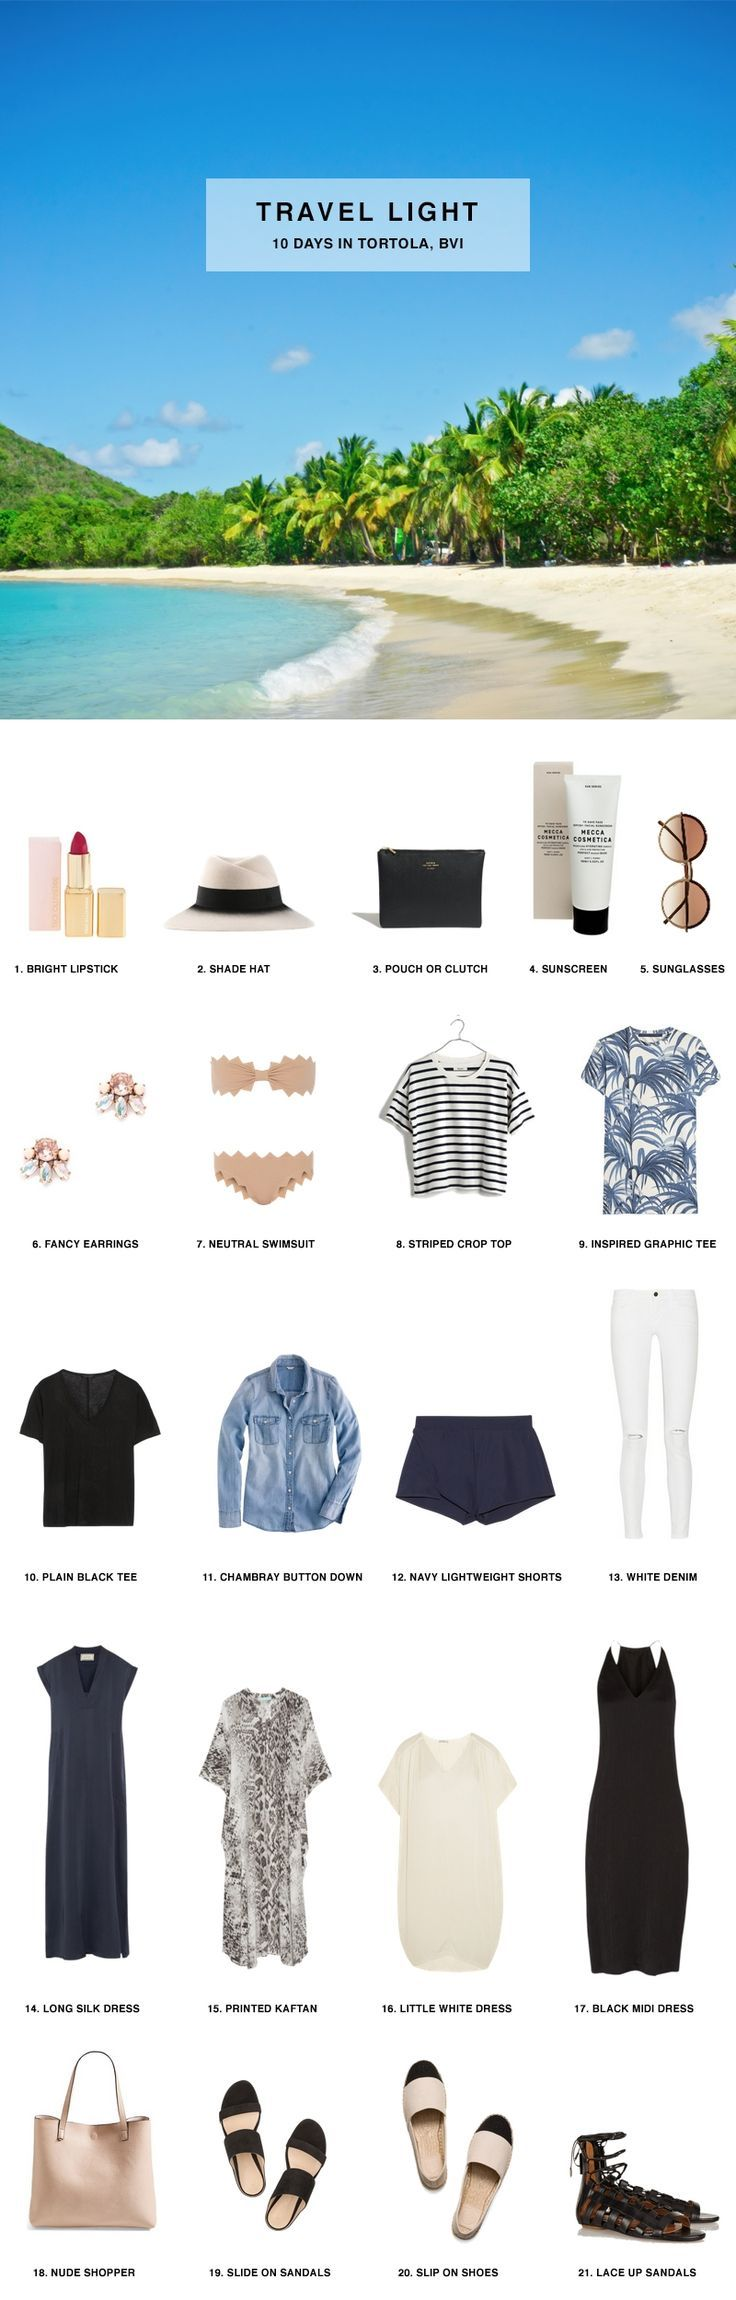 Pack for 10 Days in Tortola, British Virgin Islands, includes packing list  and outfits